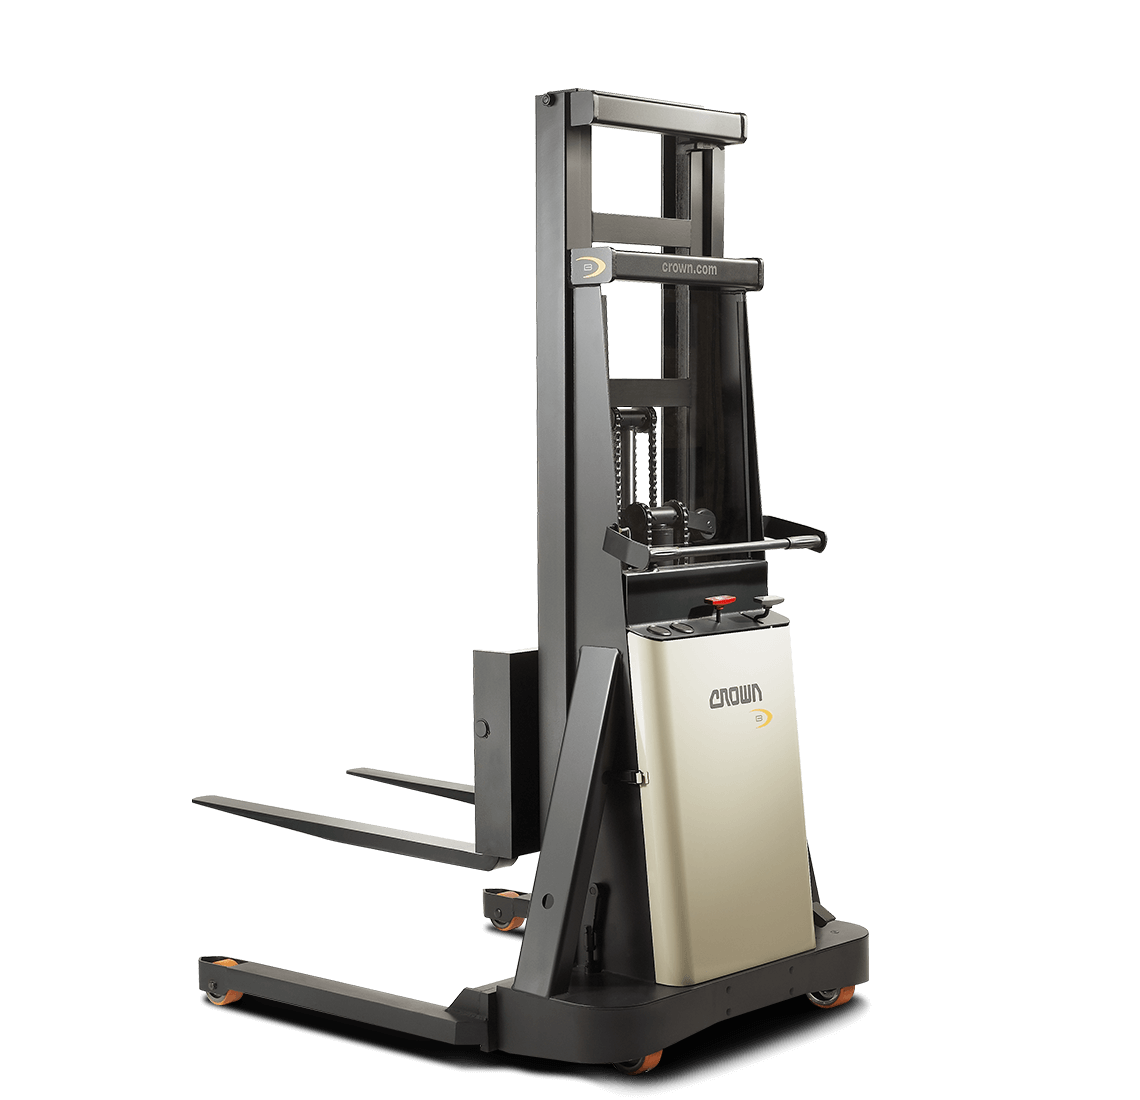 Crown's B series manual pallet stacker